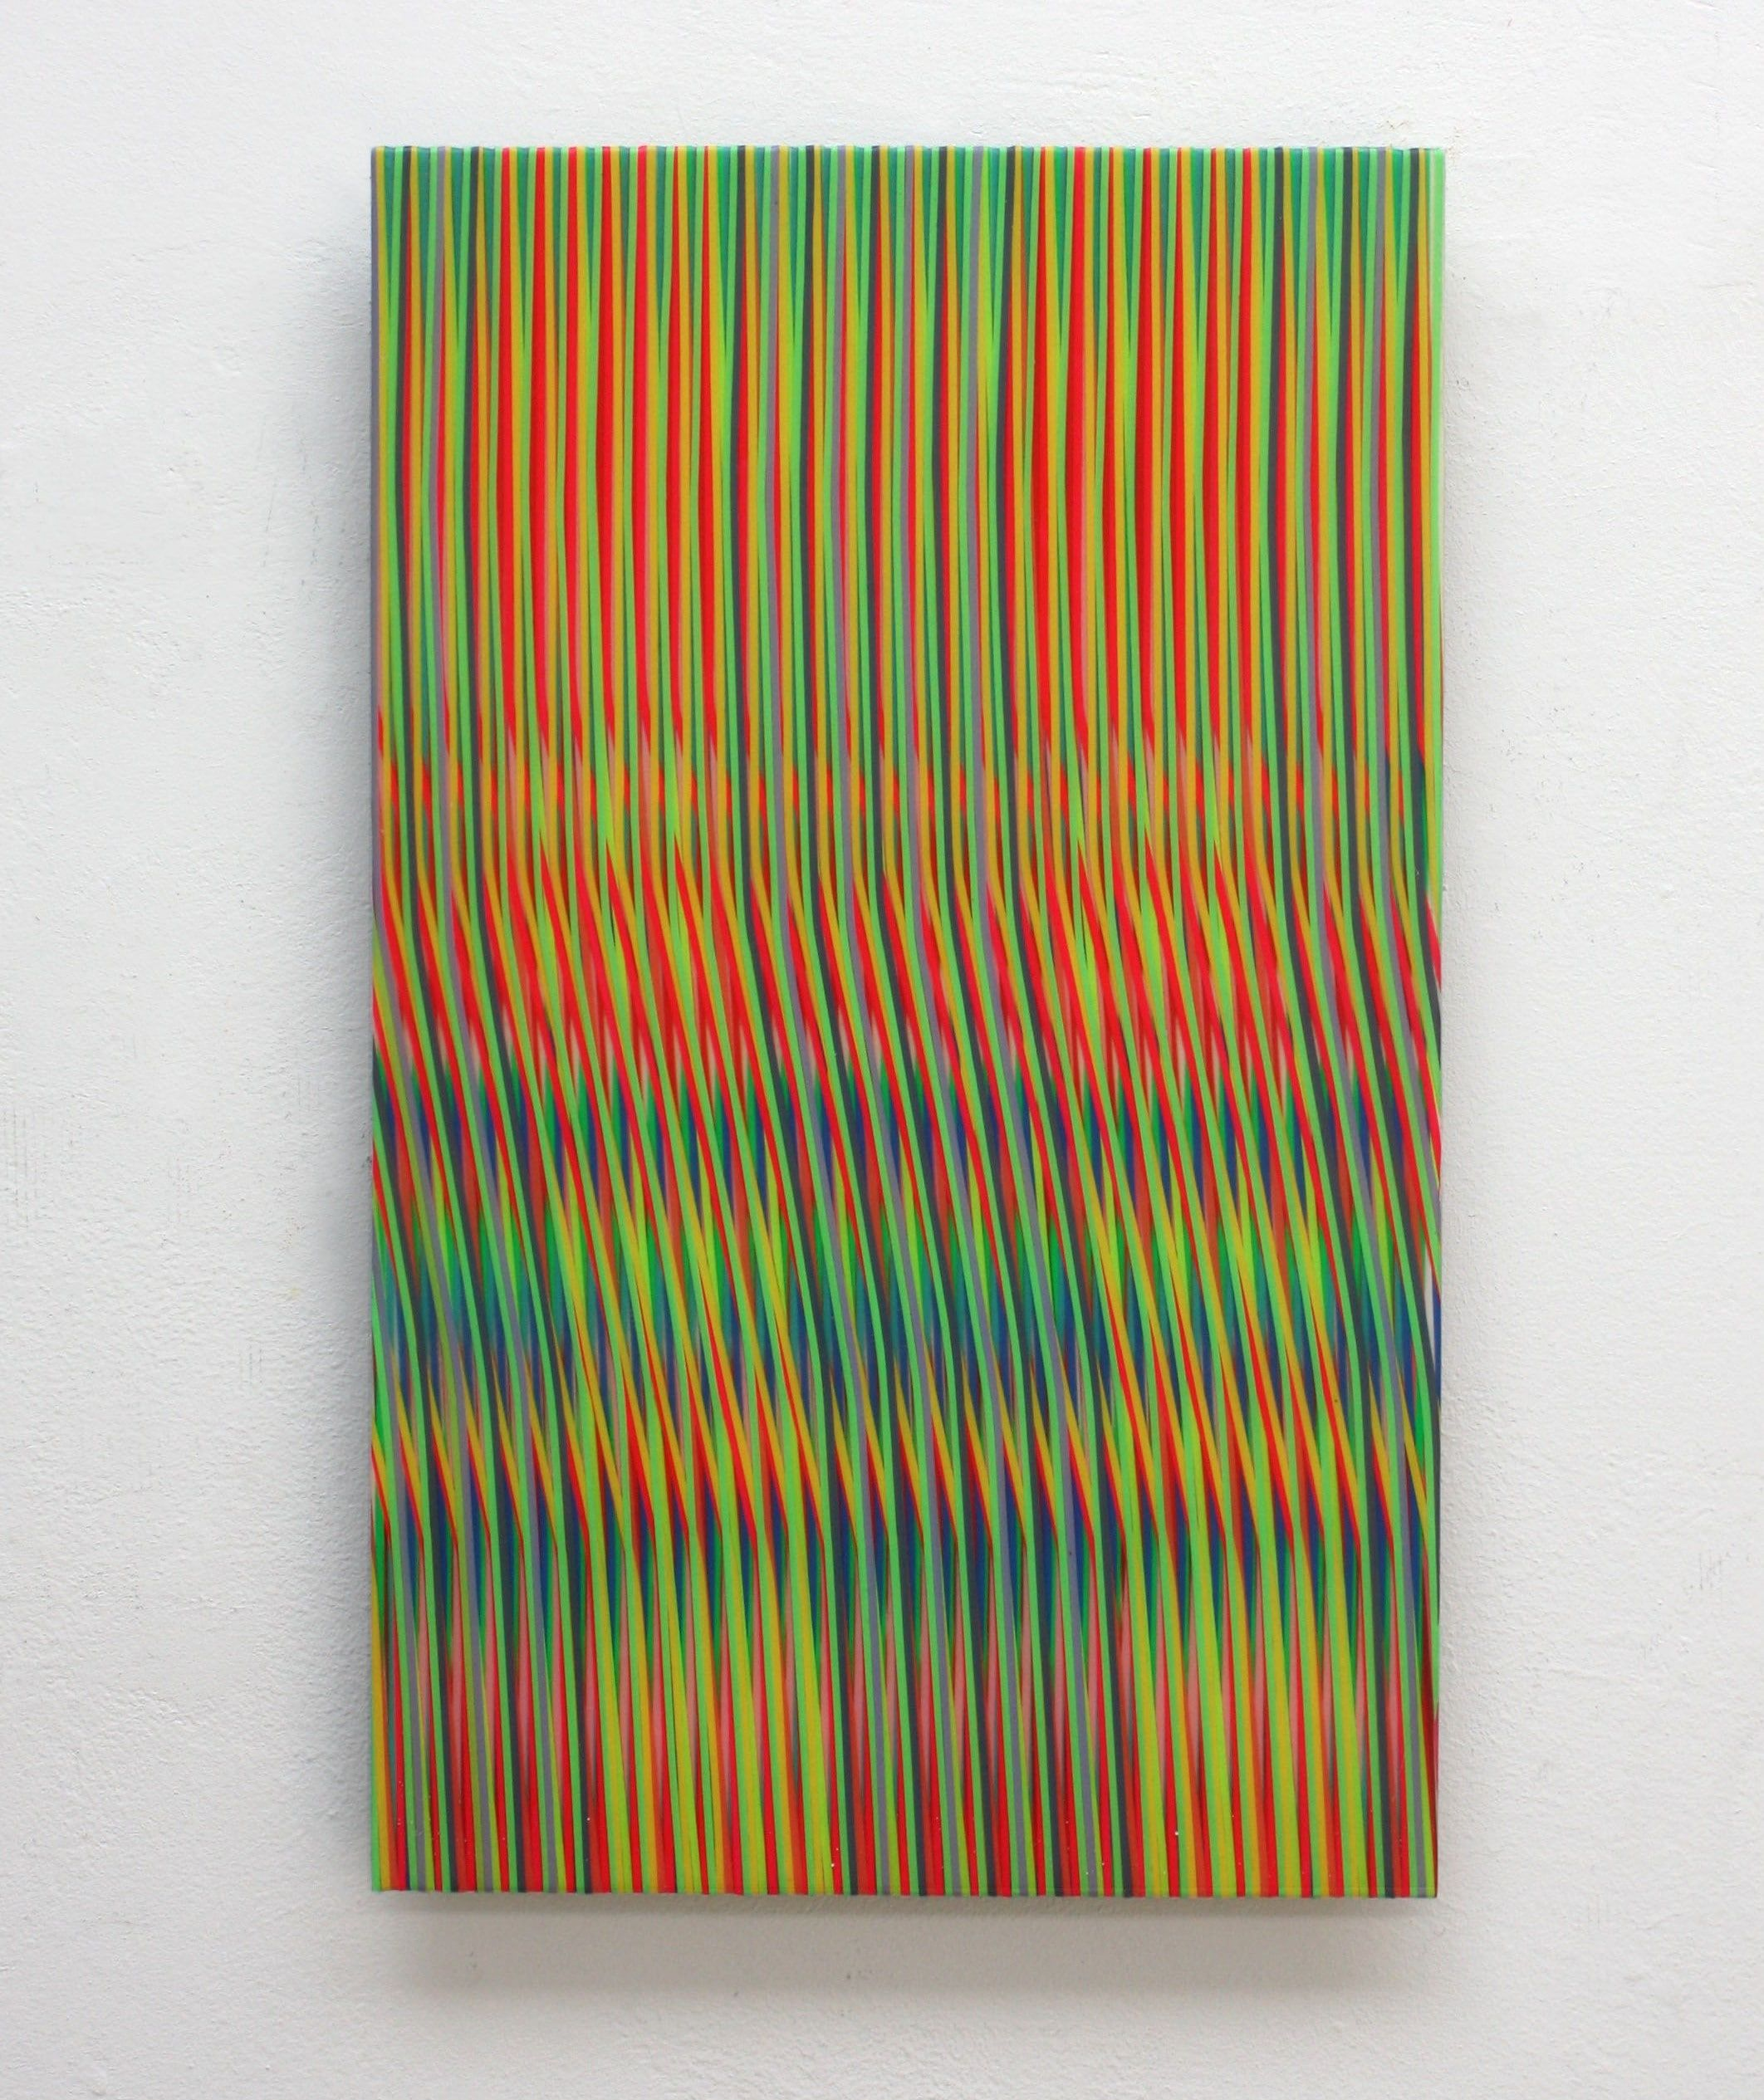 Line 1213-13,Ahn Hyun-Ju,Contemporary painting